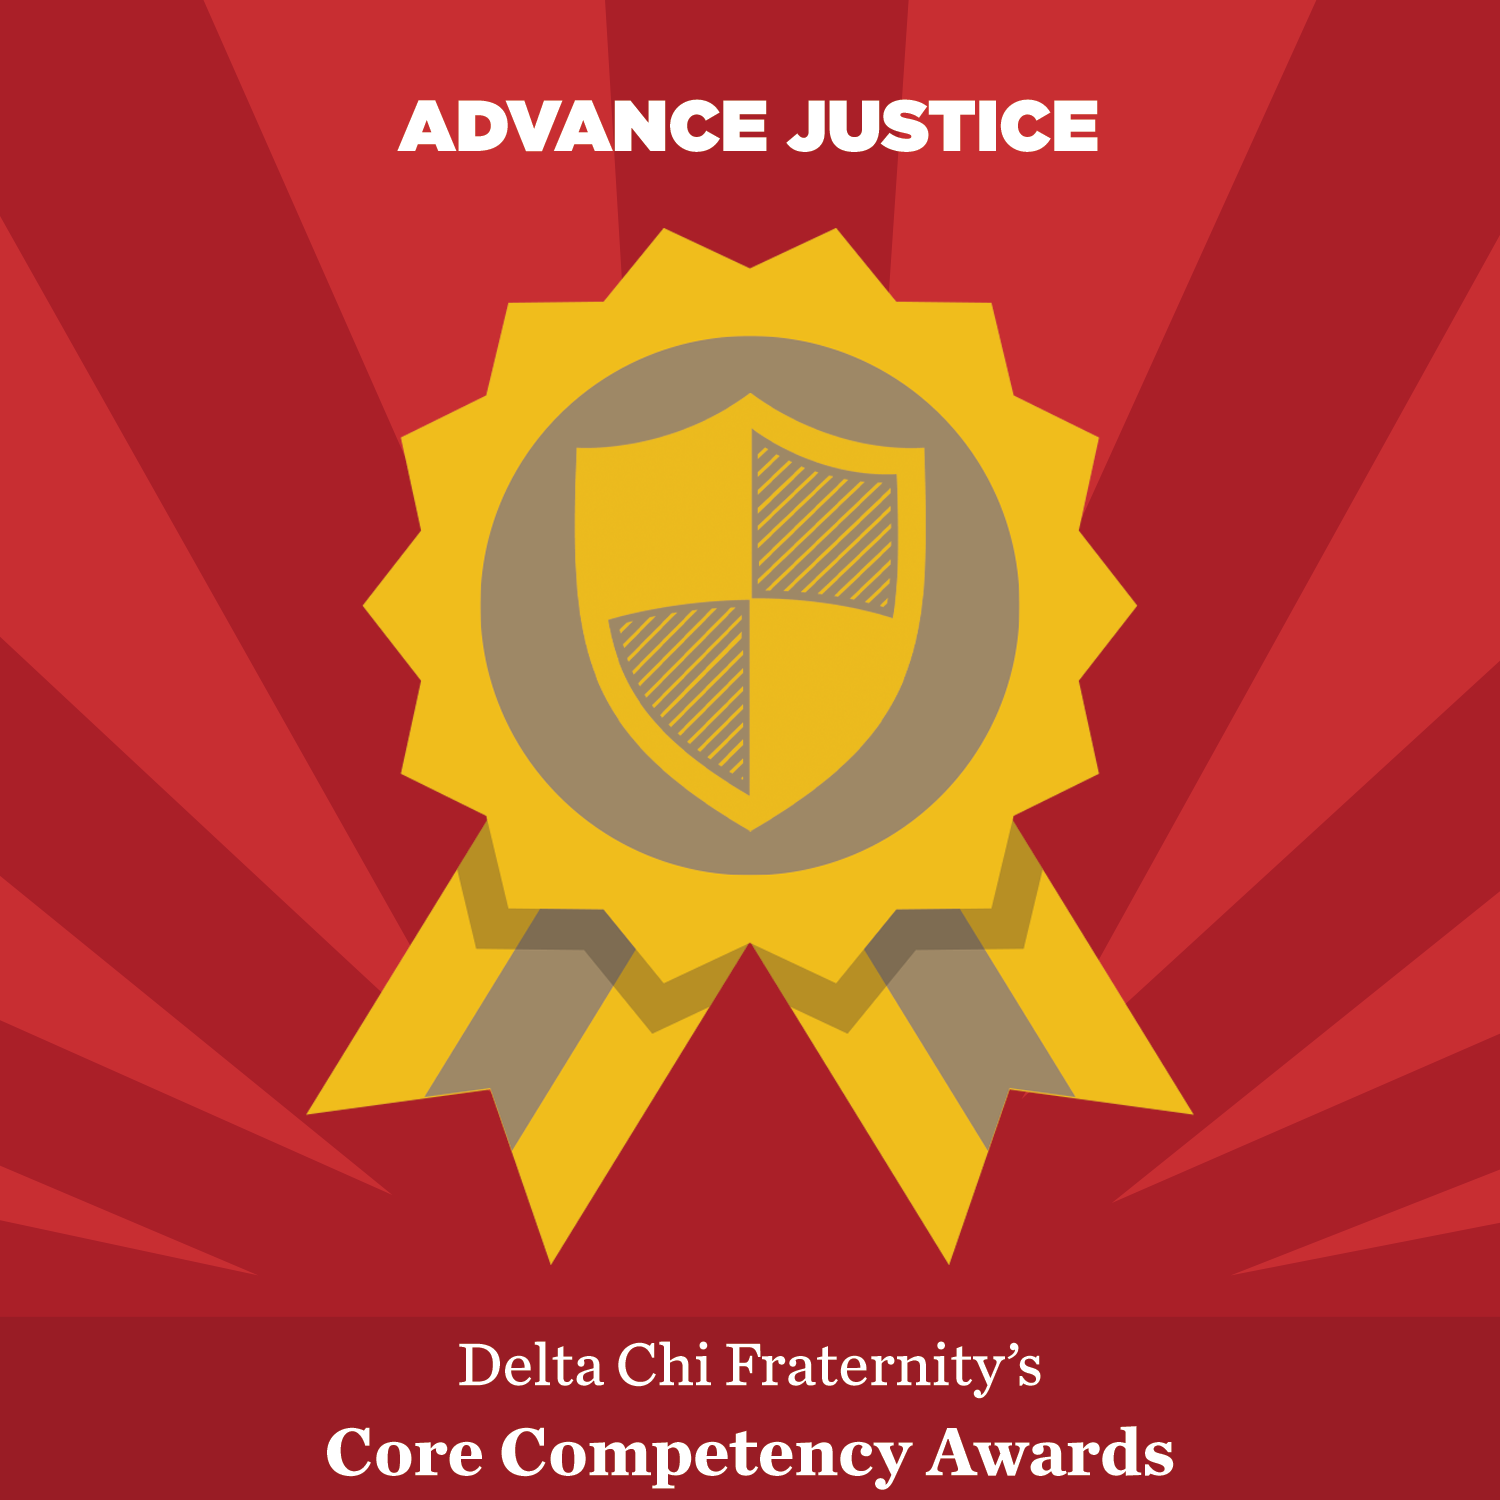 Core Competency Awards (Advance Justice)